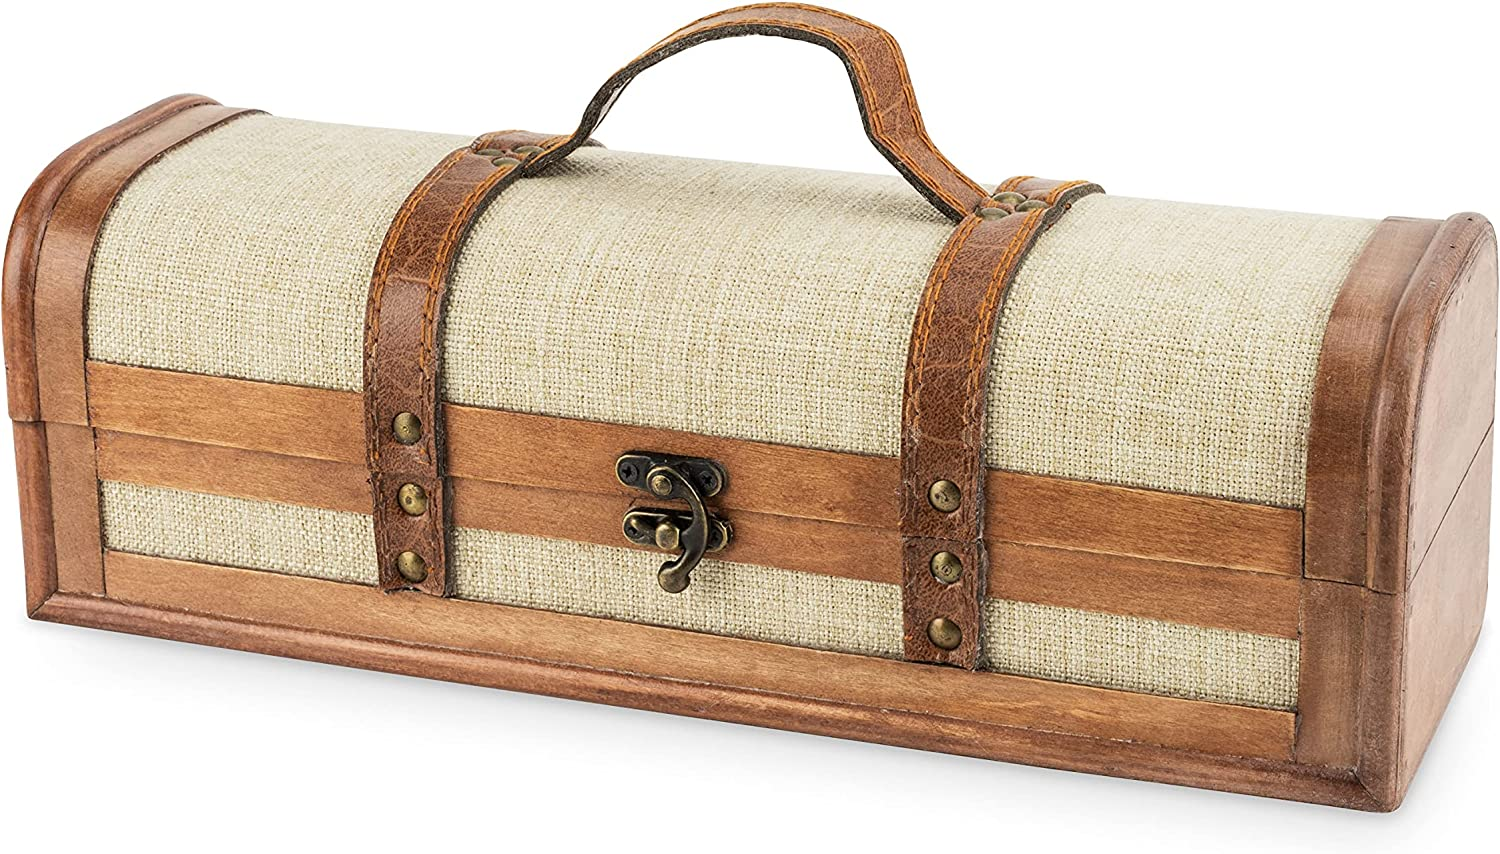 Twine Outlet SALE 1-Bottle Vintage Branded goods Striped Trunk Decorative Wine Brow Boxes